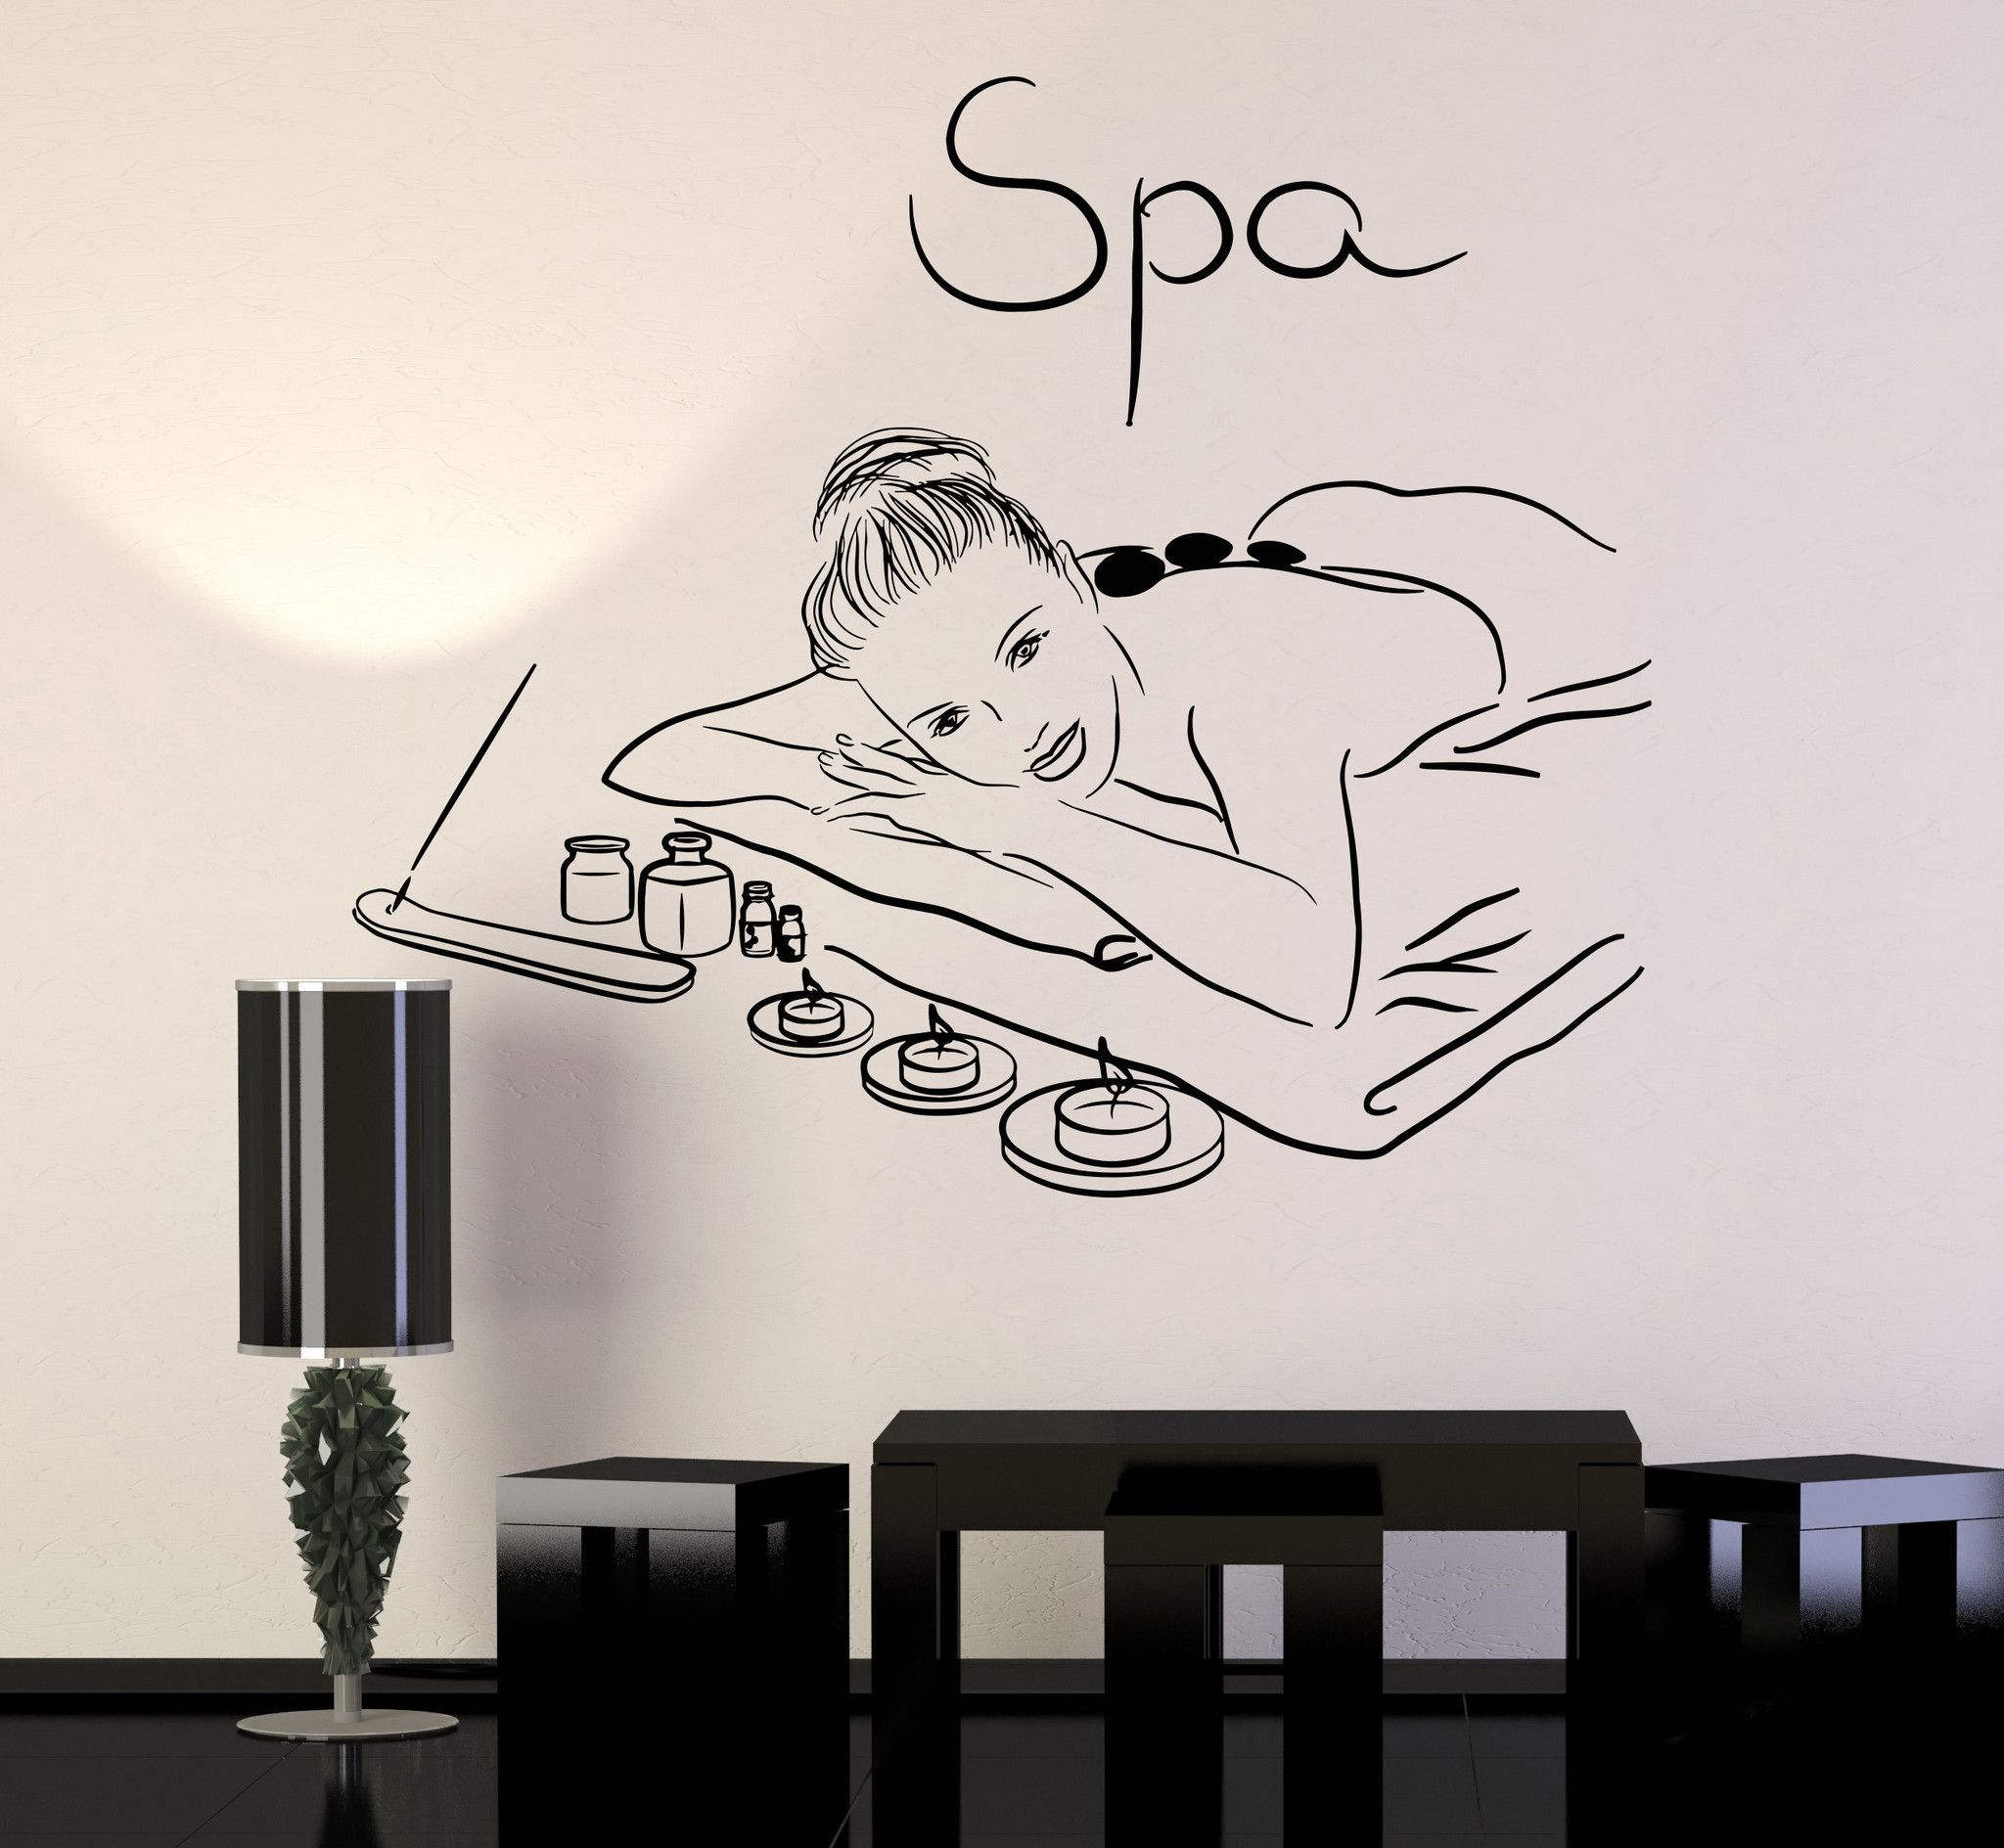 Vinyl Wall Decal Spa Beauty Salon Massage Relax Stickers Mural Unique Gift 213ig Vinyl Wall Decals Vinyl Wall Beauty Salon Decor